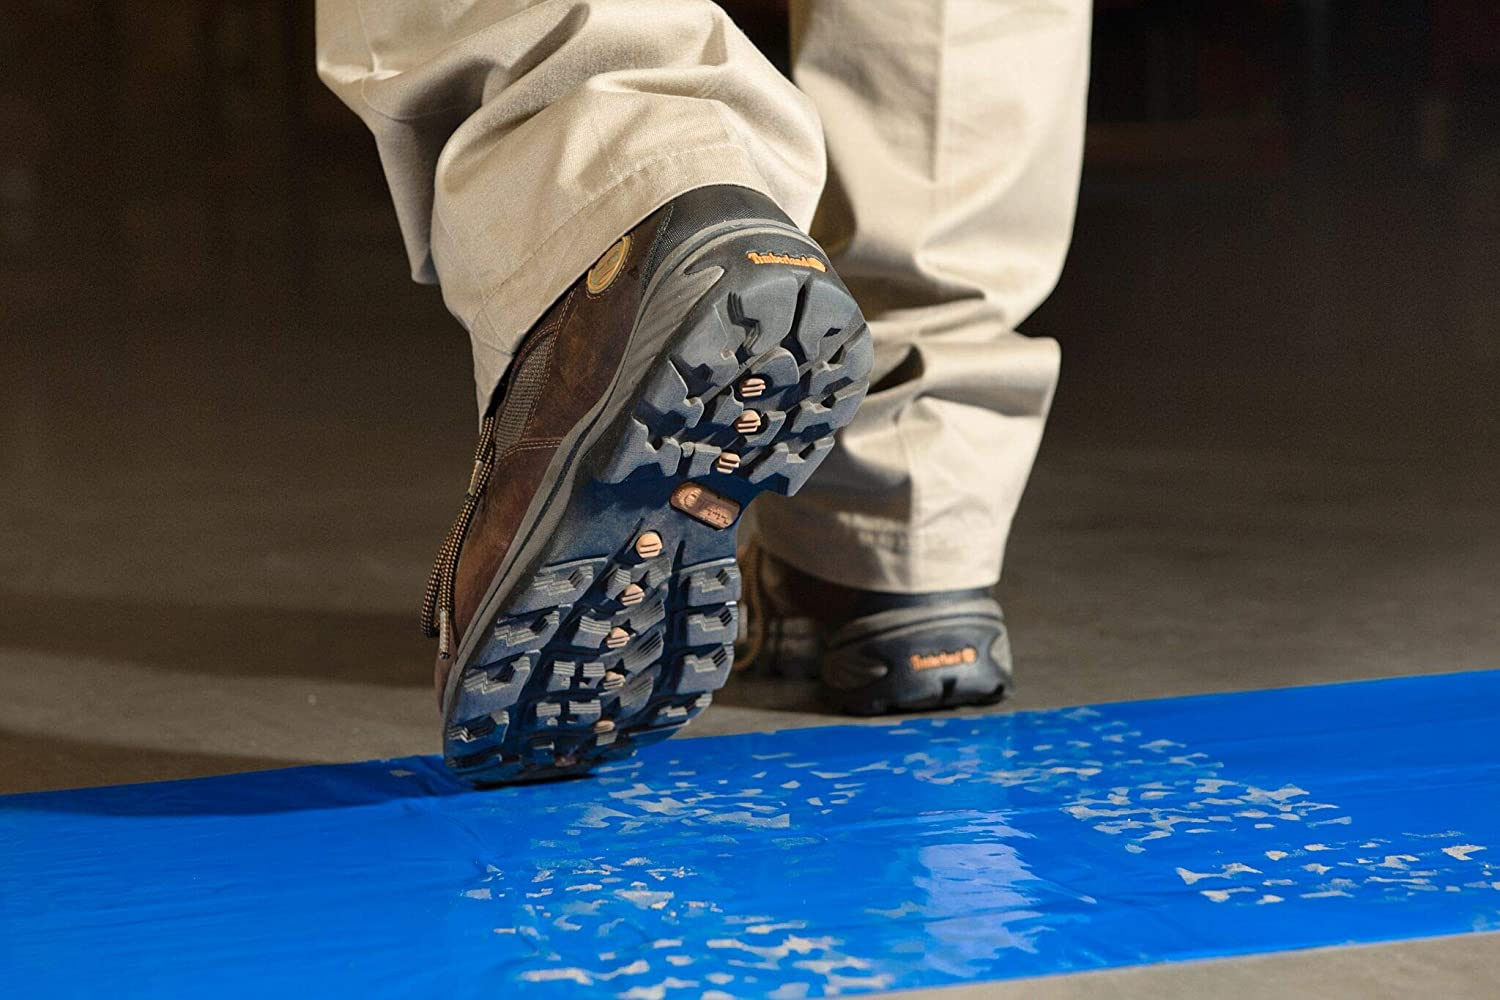 Blue Tacky Film 18 x 36 inches Enviromat Professional Grade Sticky Tacky Floor Protection Mats | Pack of 4 Pads 30 Sheets per Pad